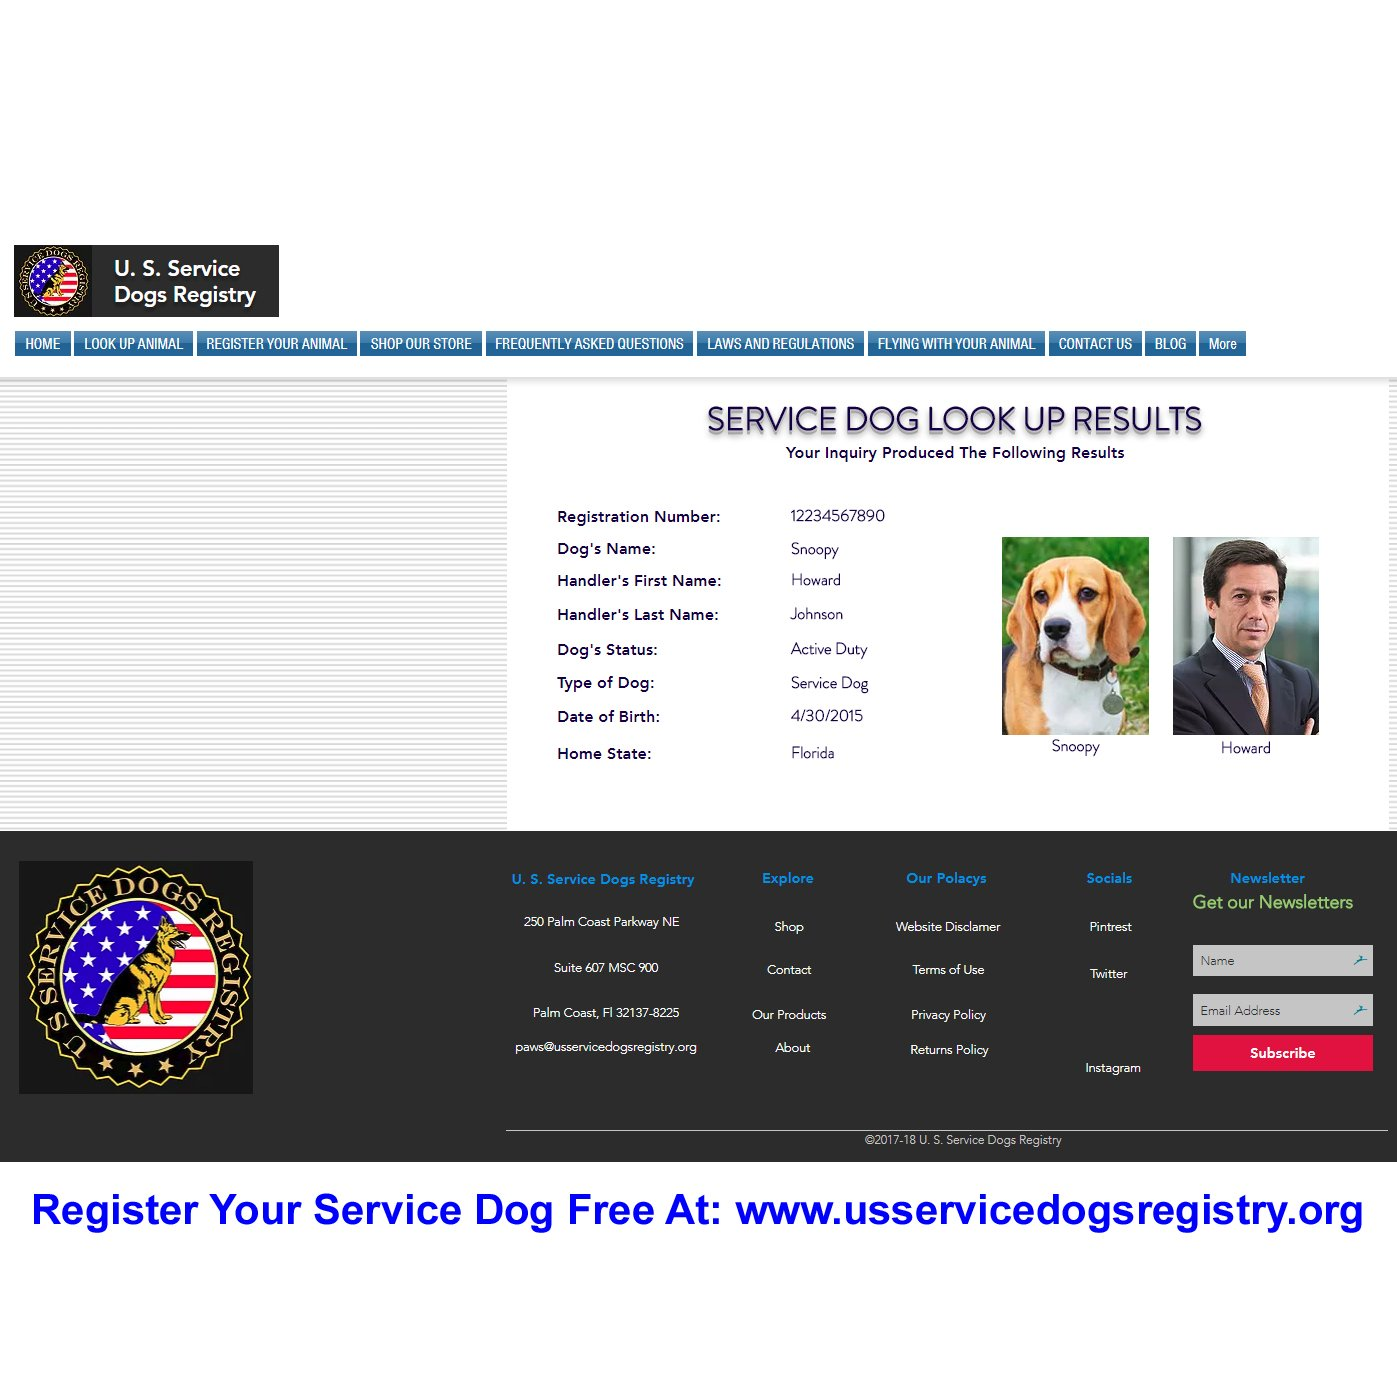 Just 4 Paws Custom Holographic QR Code Emotional Support Dog ID Card with Registration to Service Dogs Registry with Strap - Landscape Style by Just 4 Paws (Image #6)